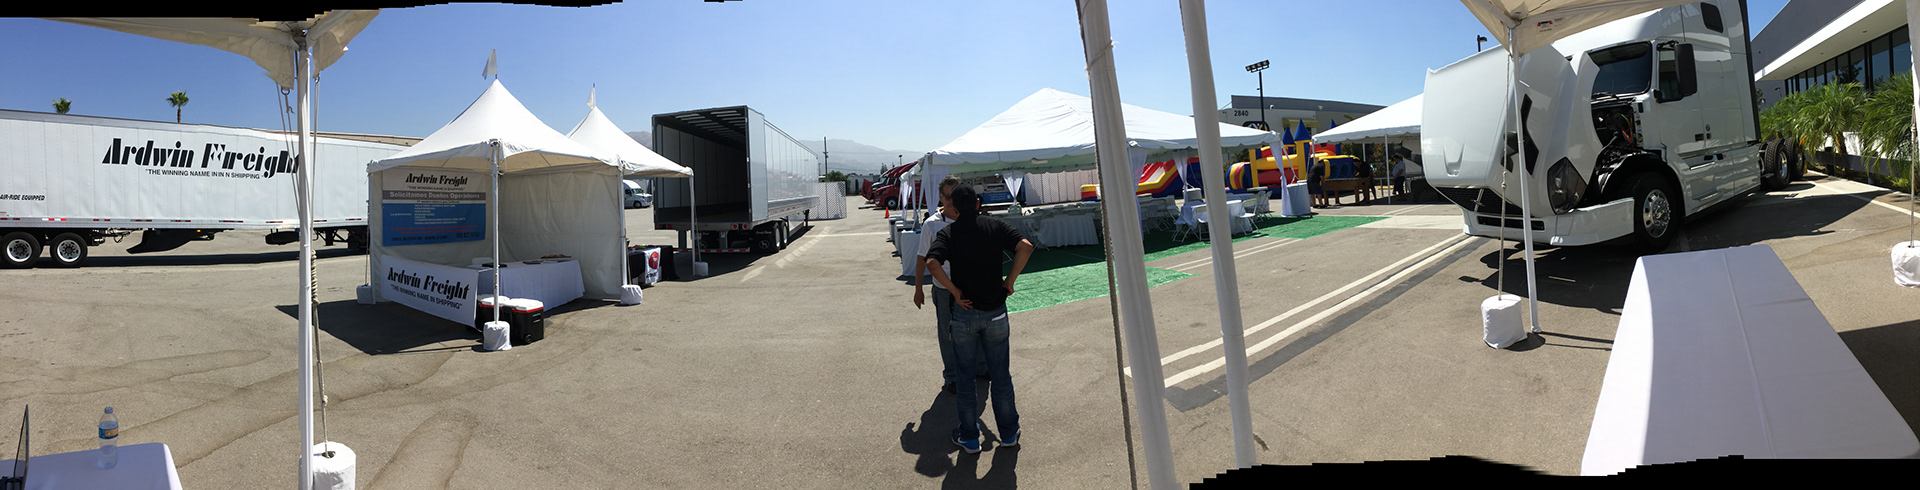 A panoramic photo of trucks on a lot at an event.